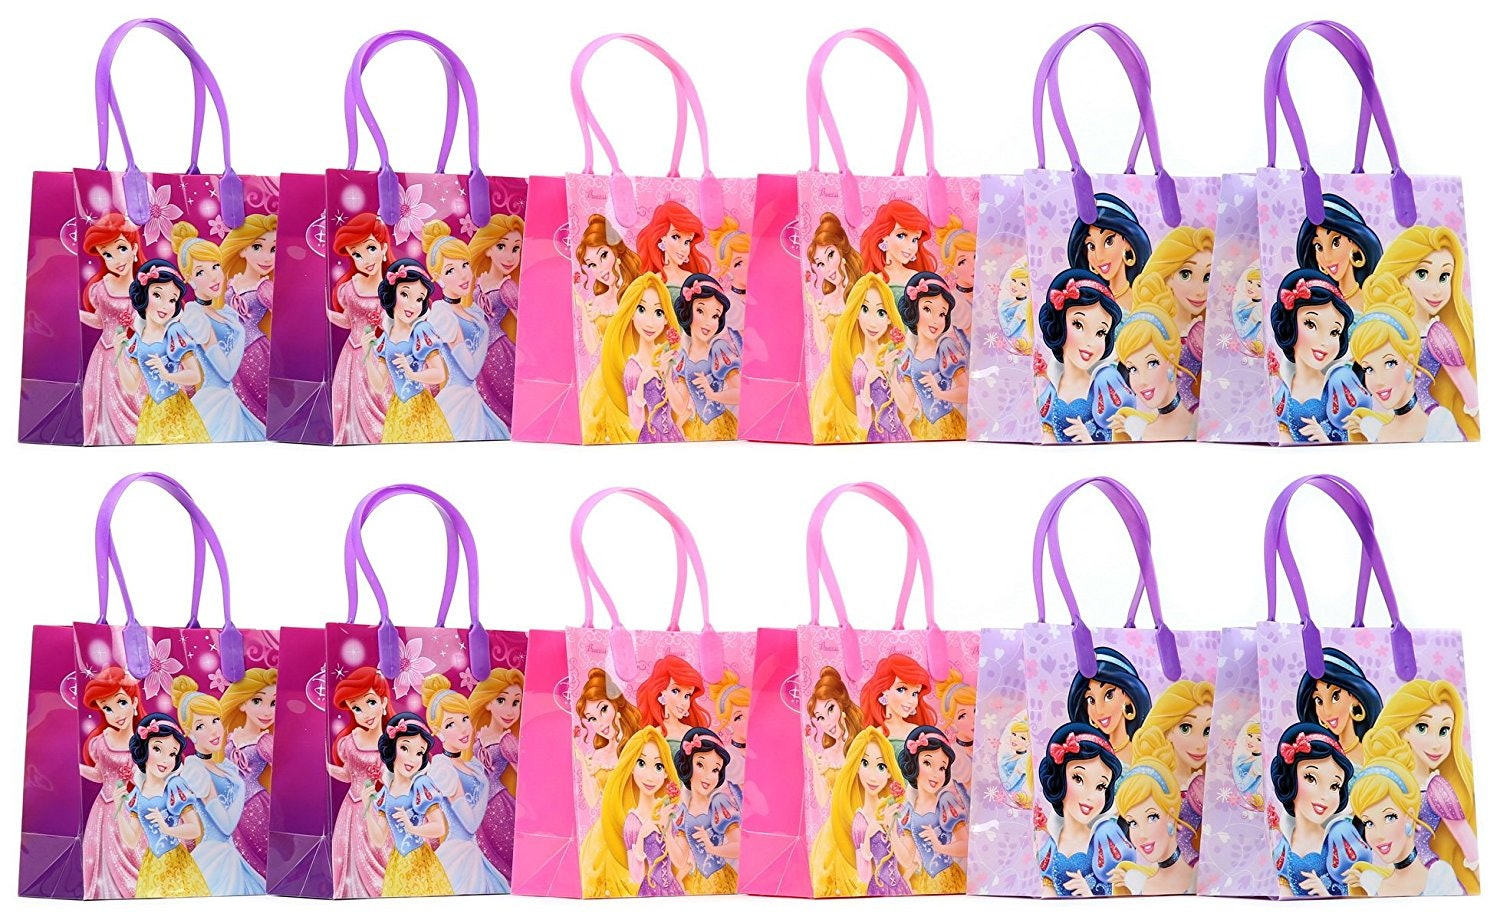 12 Disney Items For A Bachelorette Party That Will Make The Night ...